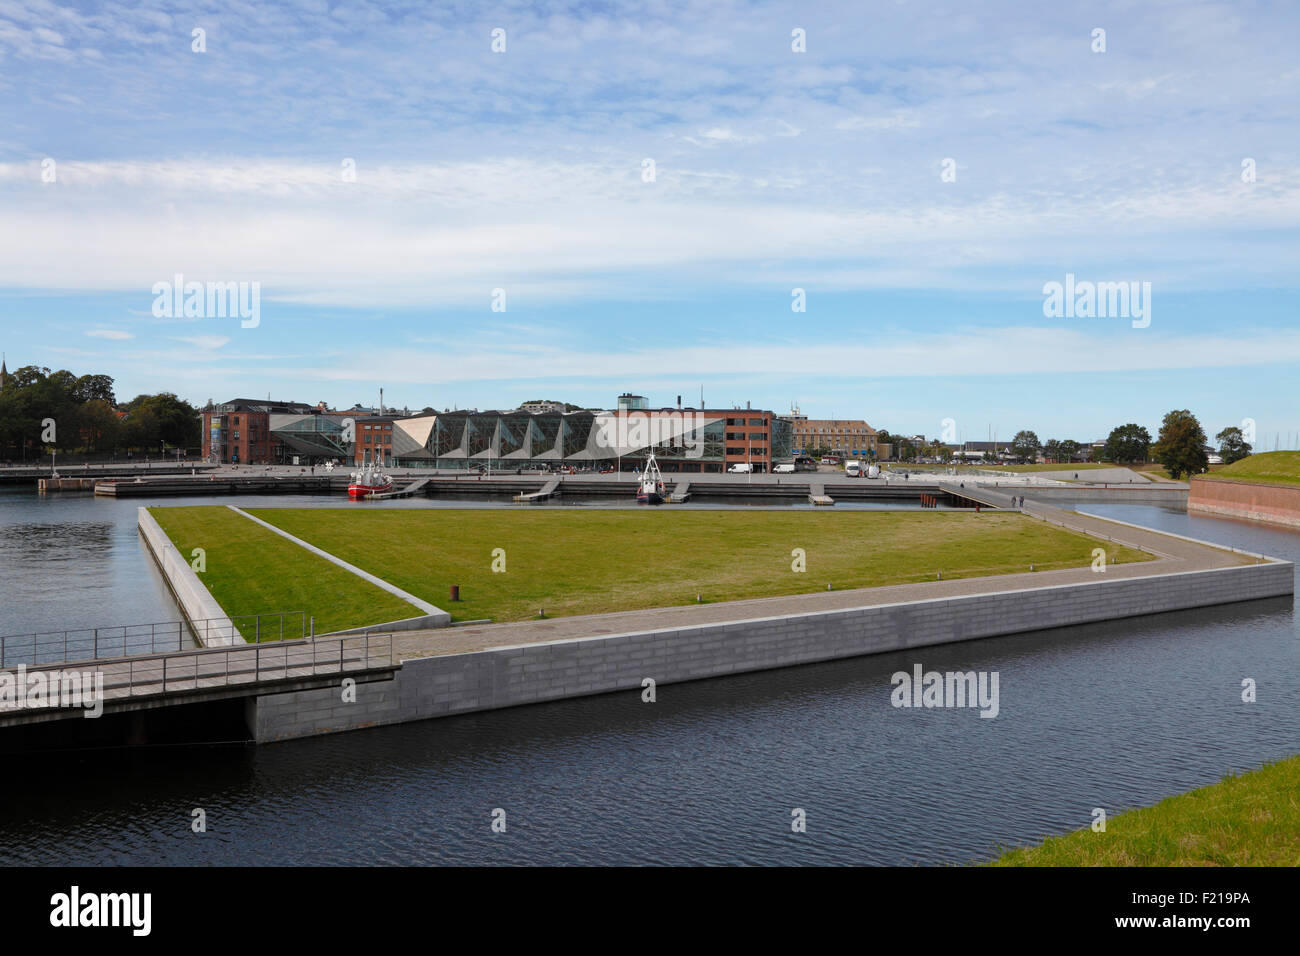 The siting of the Culture Yard on the waterfront in Elsinore / Helsingør, Denmark, seen from the ramparts of - Stock Image